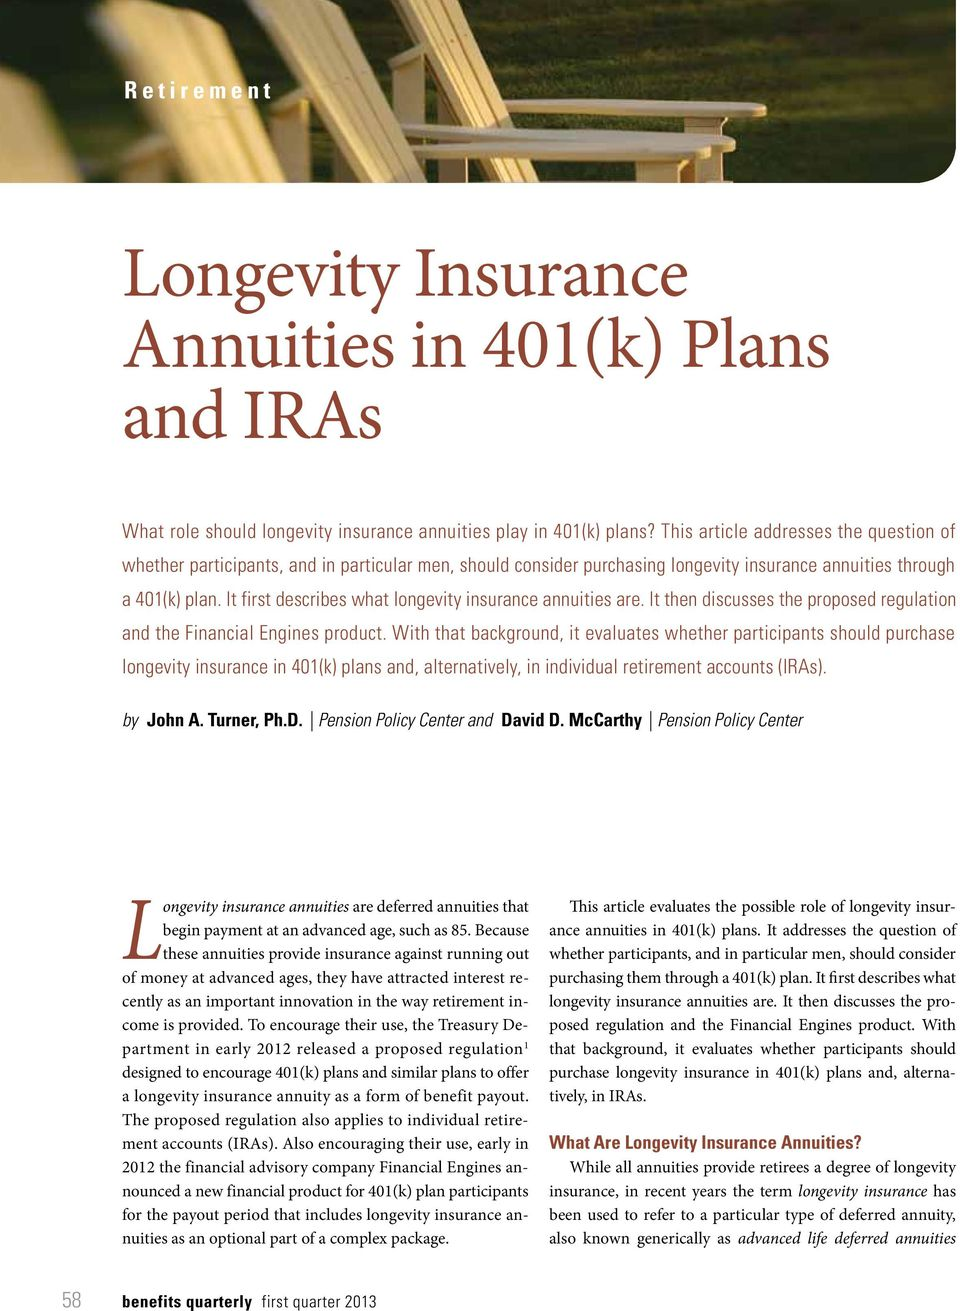 It first describes what longevity insurance annuities are. It then discusses the proposed regulation and the Financial Engines product.